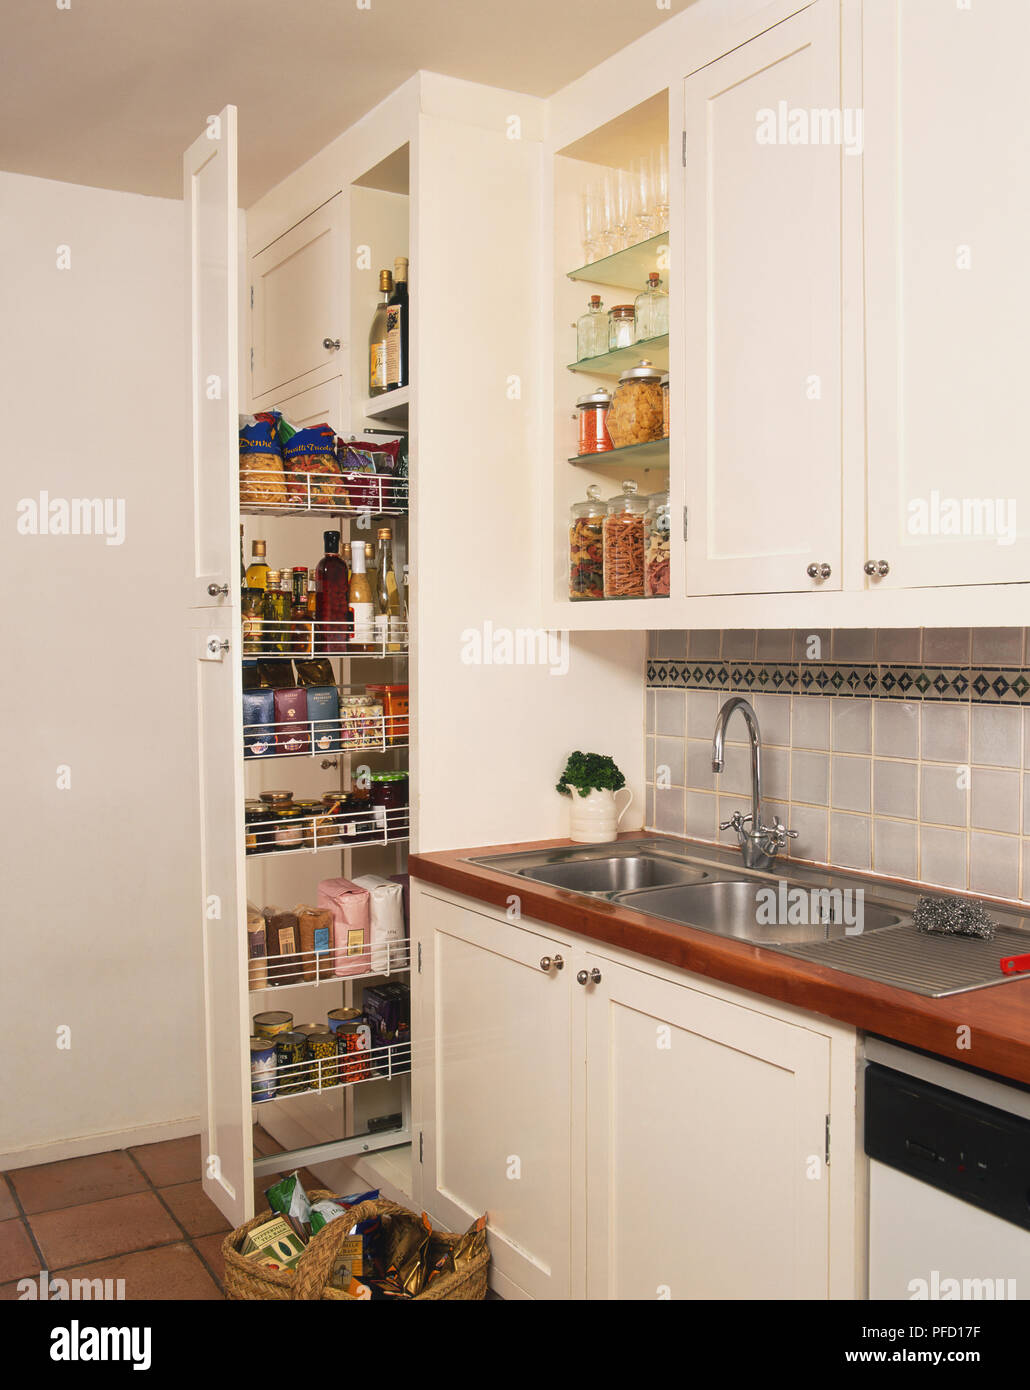 Pull-out kitchen unit stacked with condiments, tins and dry ingredients, next to double sink, side view. - Stock Image